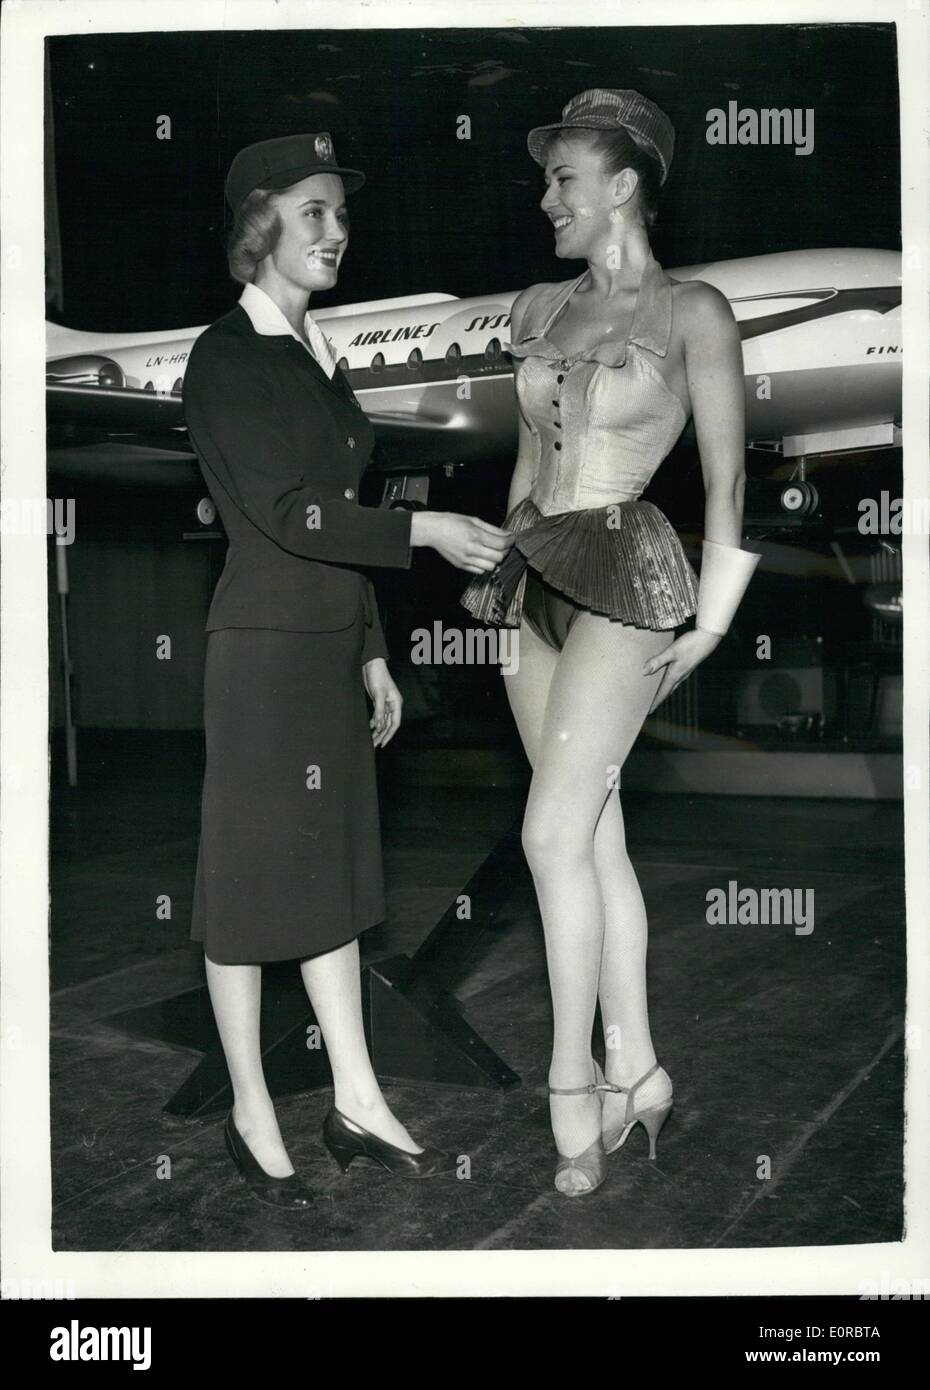 Jan. 01, 1959 - Scandinavians Air Hostesses in London. Show to laugh new services.: Four lovely Scandinavian air hostesses as were to be seen in London this afternoon rehearsing for the show at the ''Talk of the Town'' - which is being held to launch new services of the Scandinavian Air Lines. Part jet engines air liner. The show illustrates air services of the present and the future - Stock Image